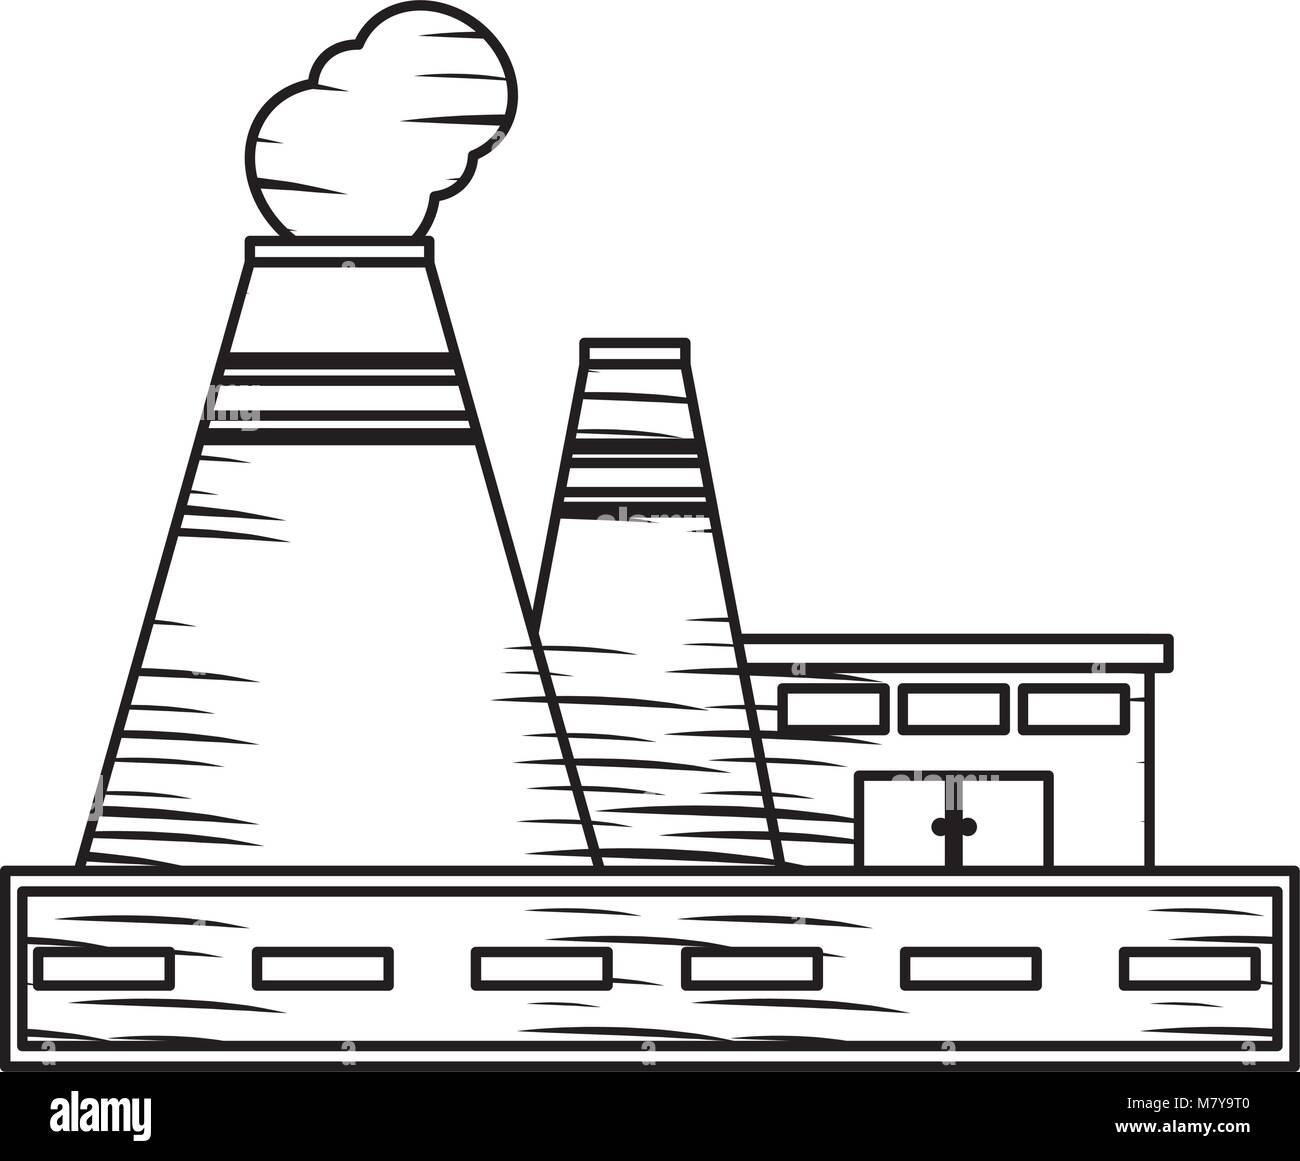 sketch of Industrial building icon over white background, vector illustration - Stock Image